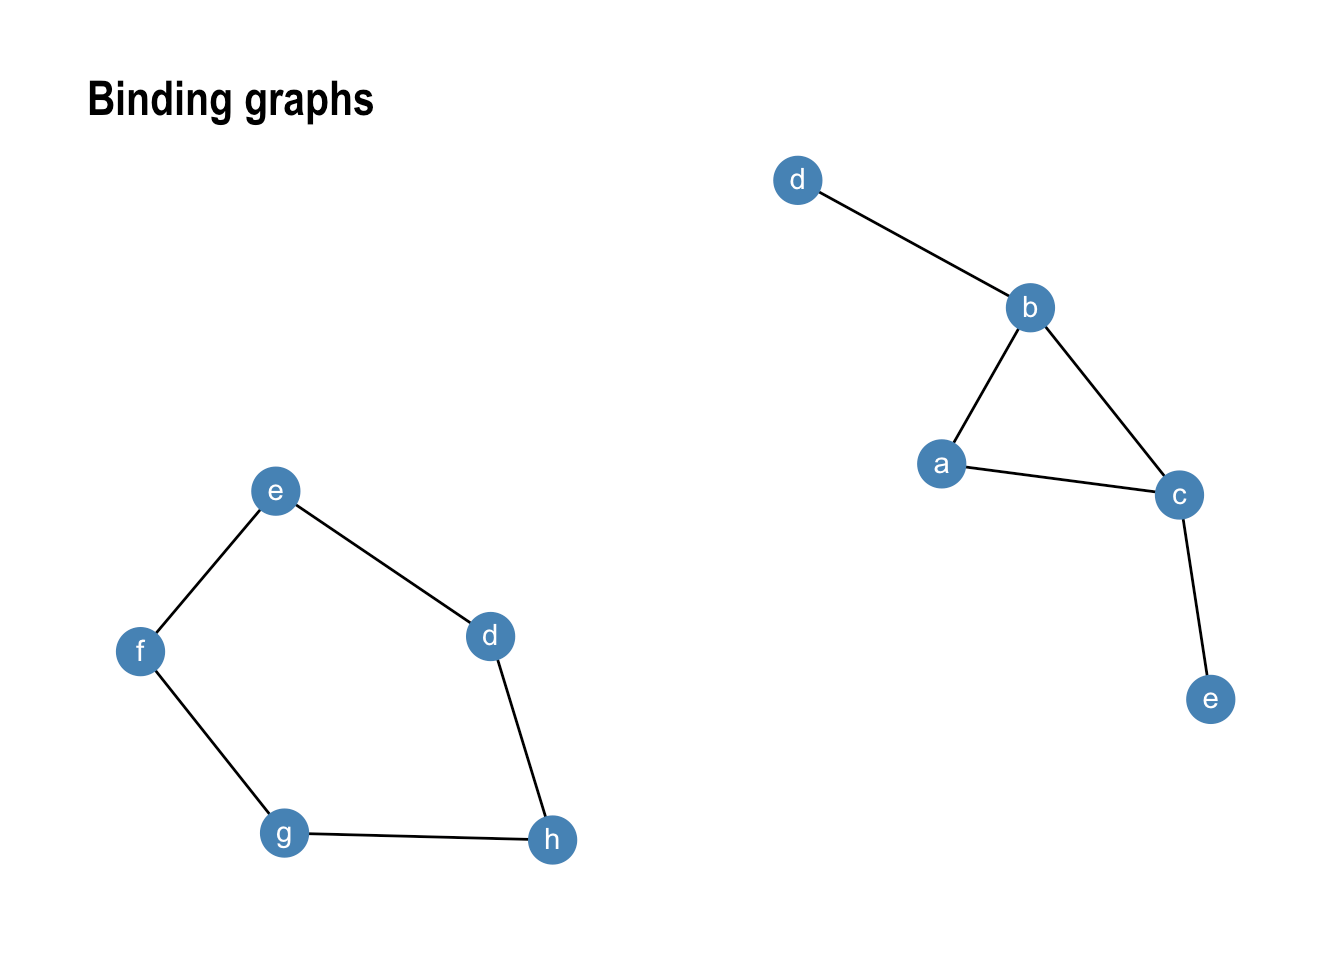 hight resolution of gr1 graph join gr2 ggraph layout kk geom edge link geom node point size 8 colour steelblue geom node text aes label name